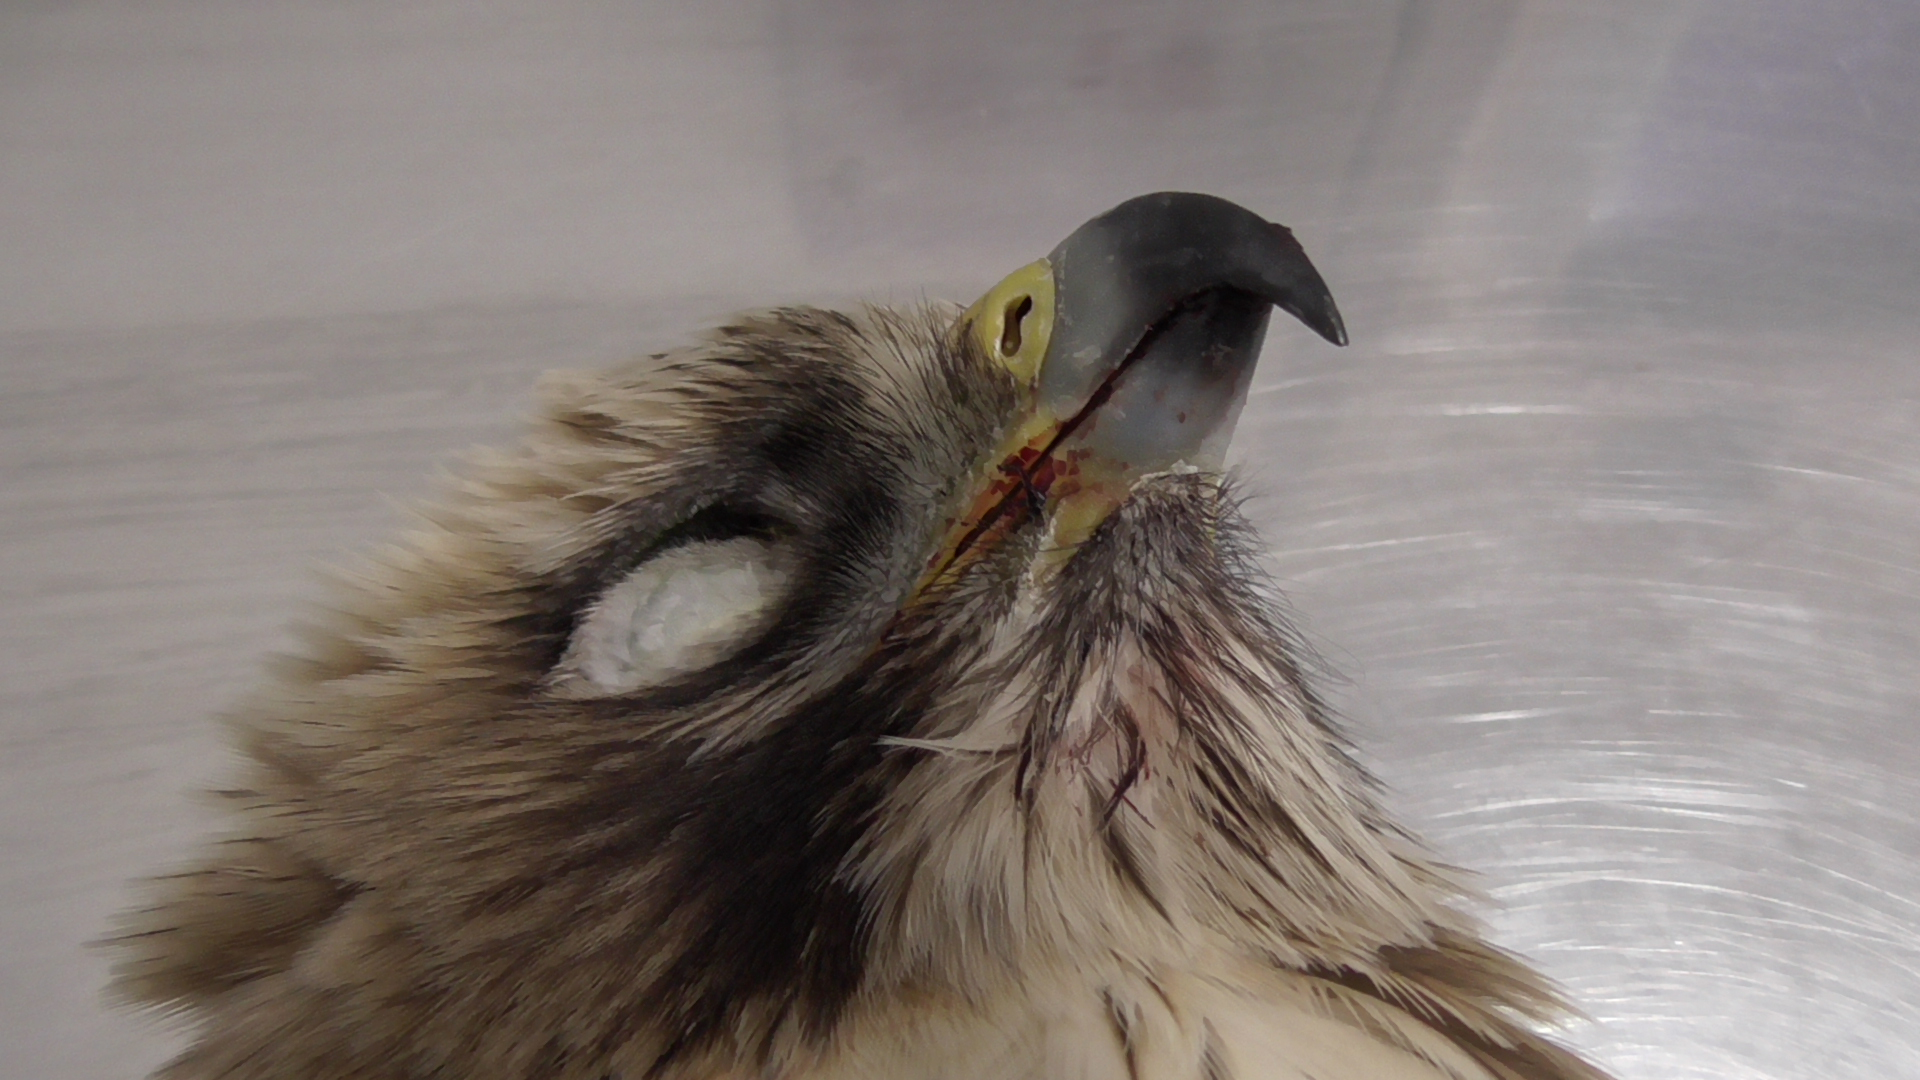 Another Booted Eagle shot down over Girgenti - BirdLife Malta